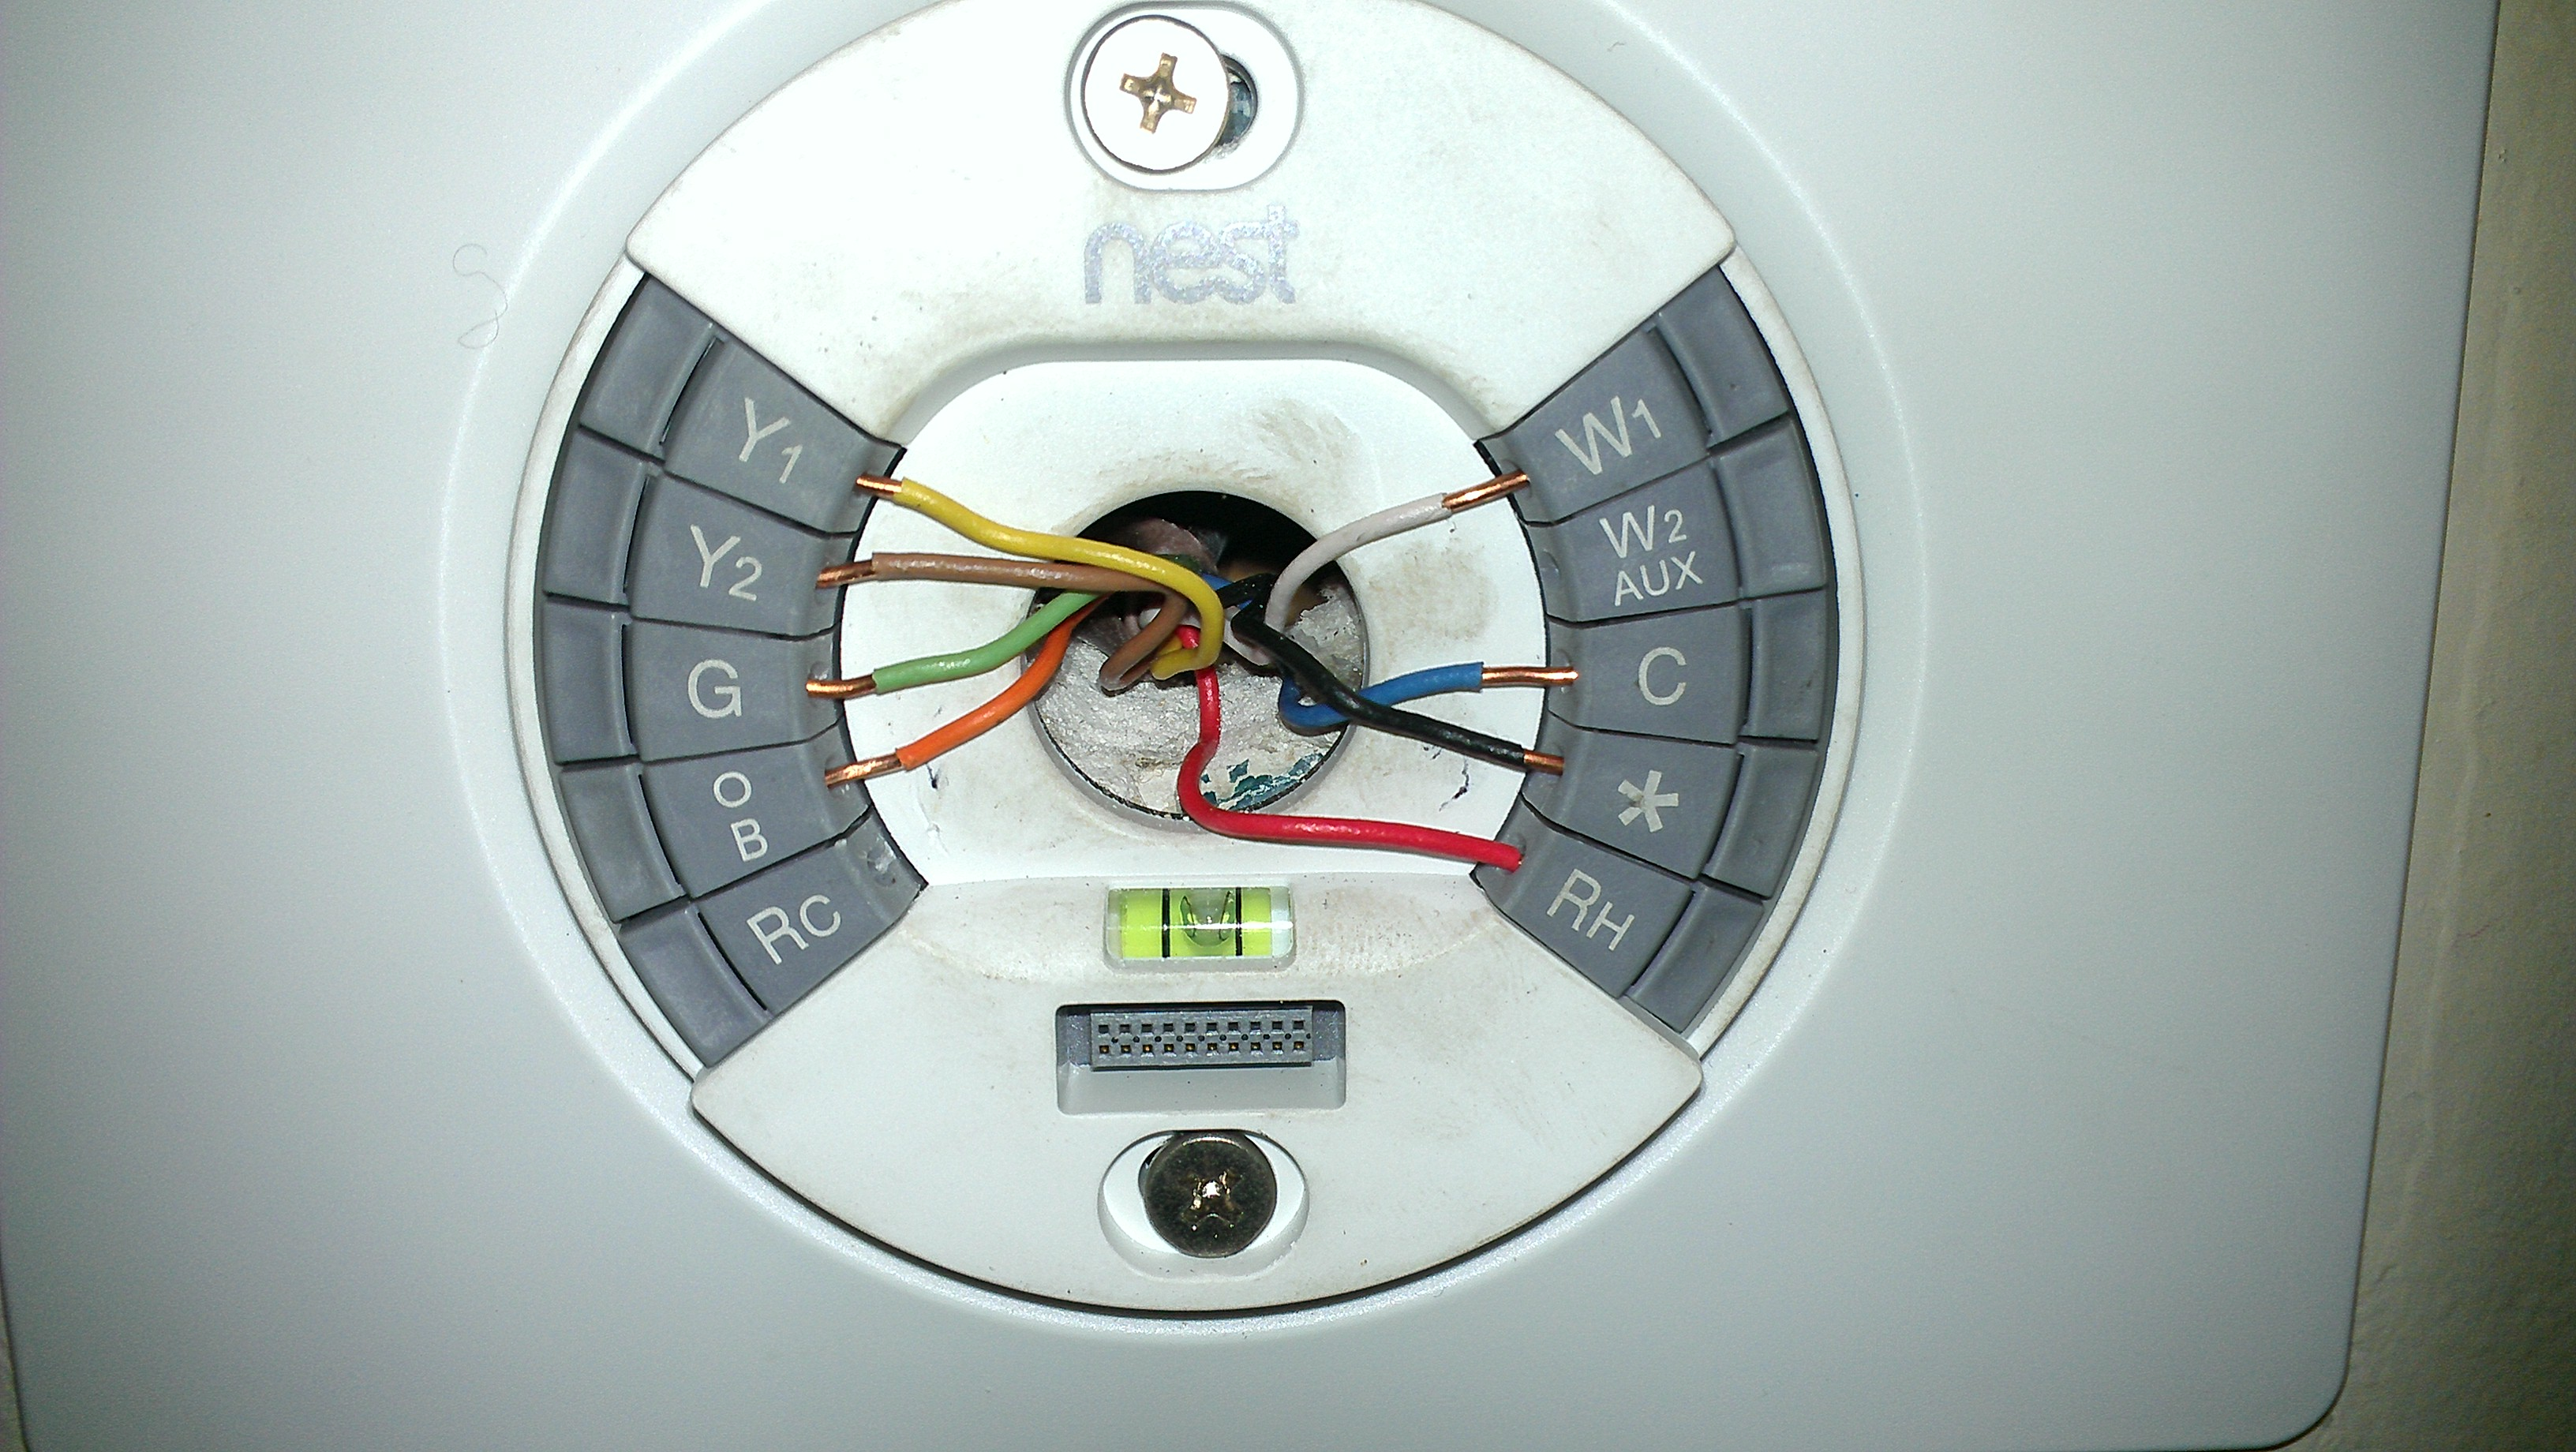 2013-11-18_112801_nest_current_setting Nest Stage Thermostat Wiring Diagram on nest 2wire diagram, nest humidifier wiring, nest thermostat humidifier diagram, nest thermometer diagram, nest c wire diagram, nest thermostat common wire,